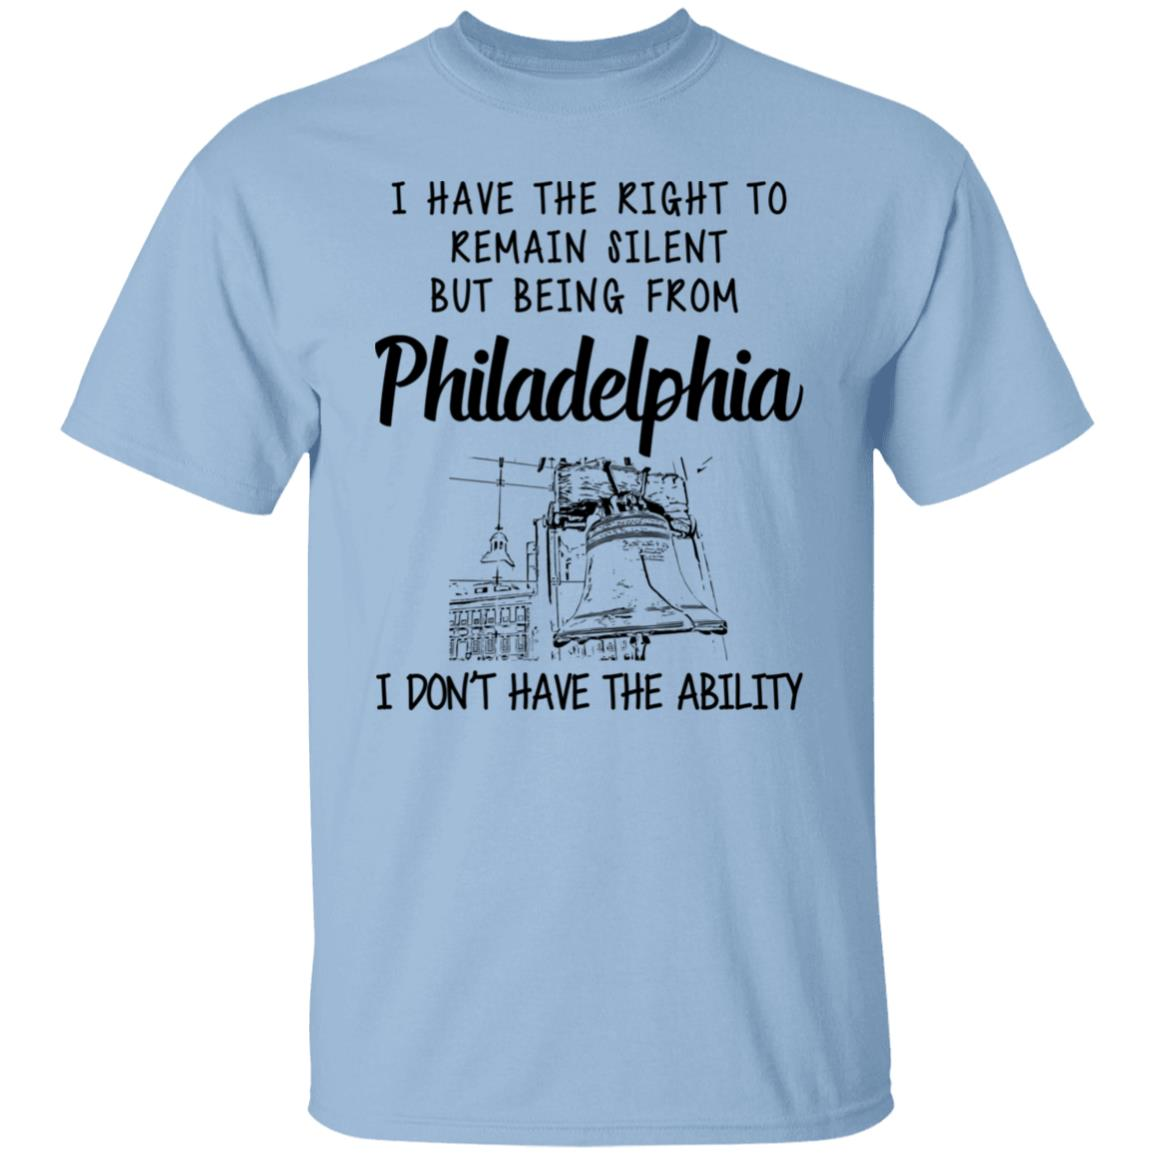 I HAVE THE RIGHT TO REMAIN SILENT BUT BEING FROM PHILADELPHIA